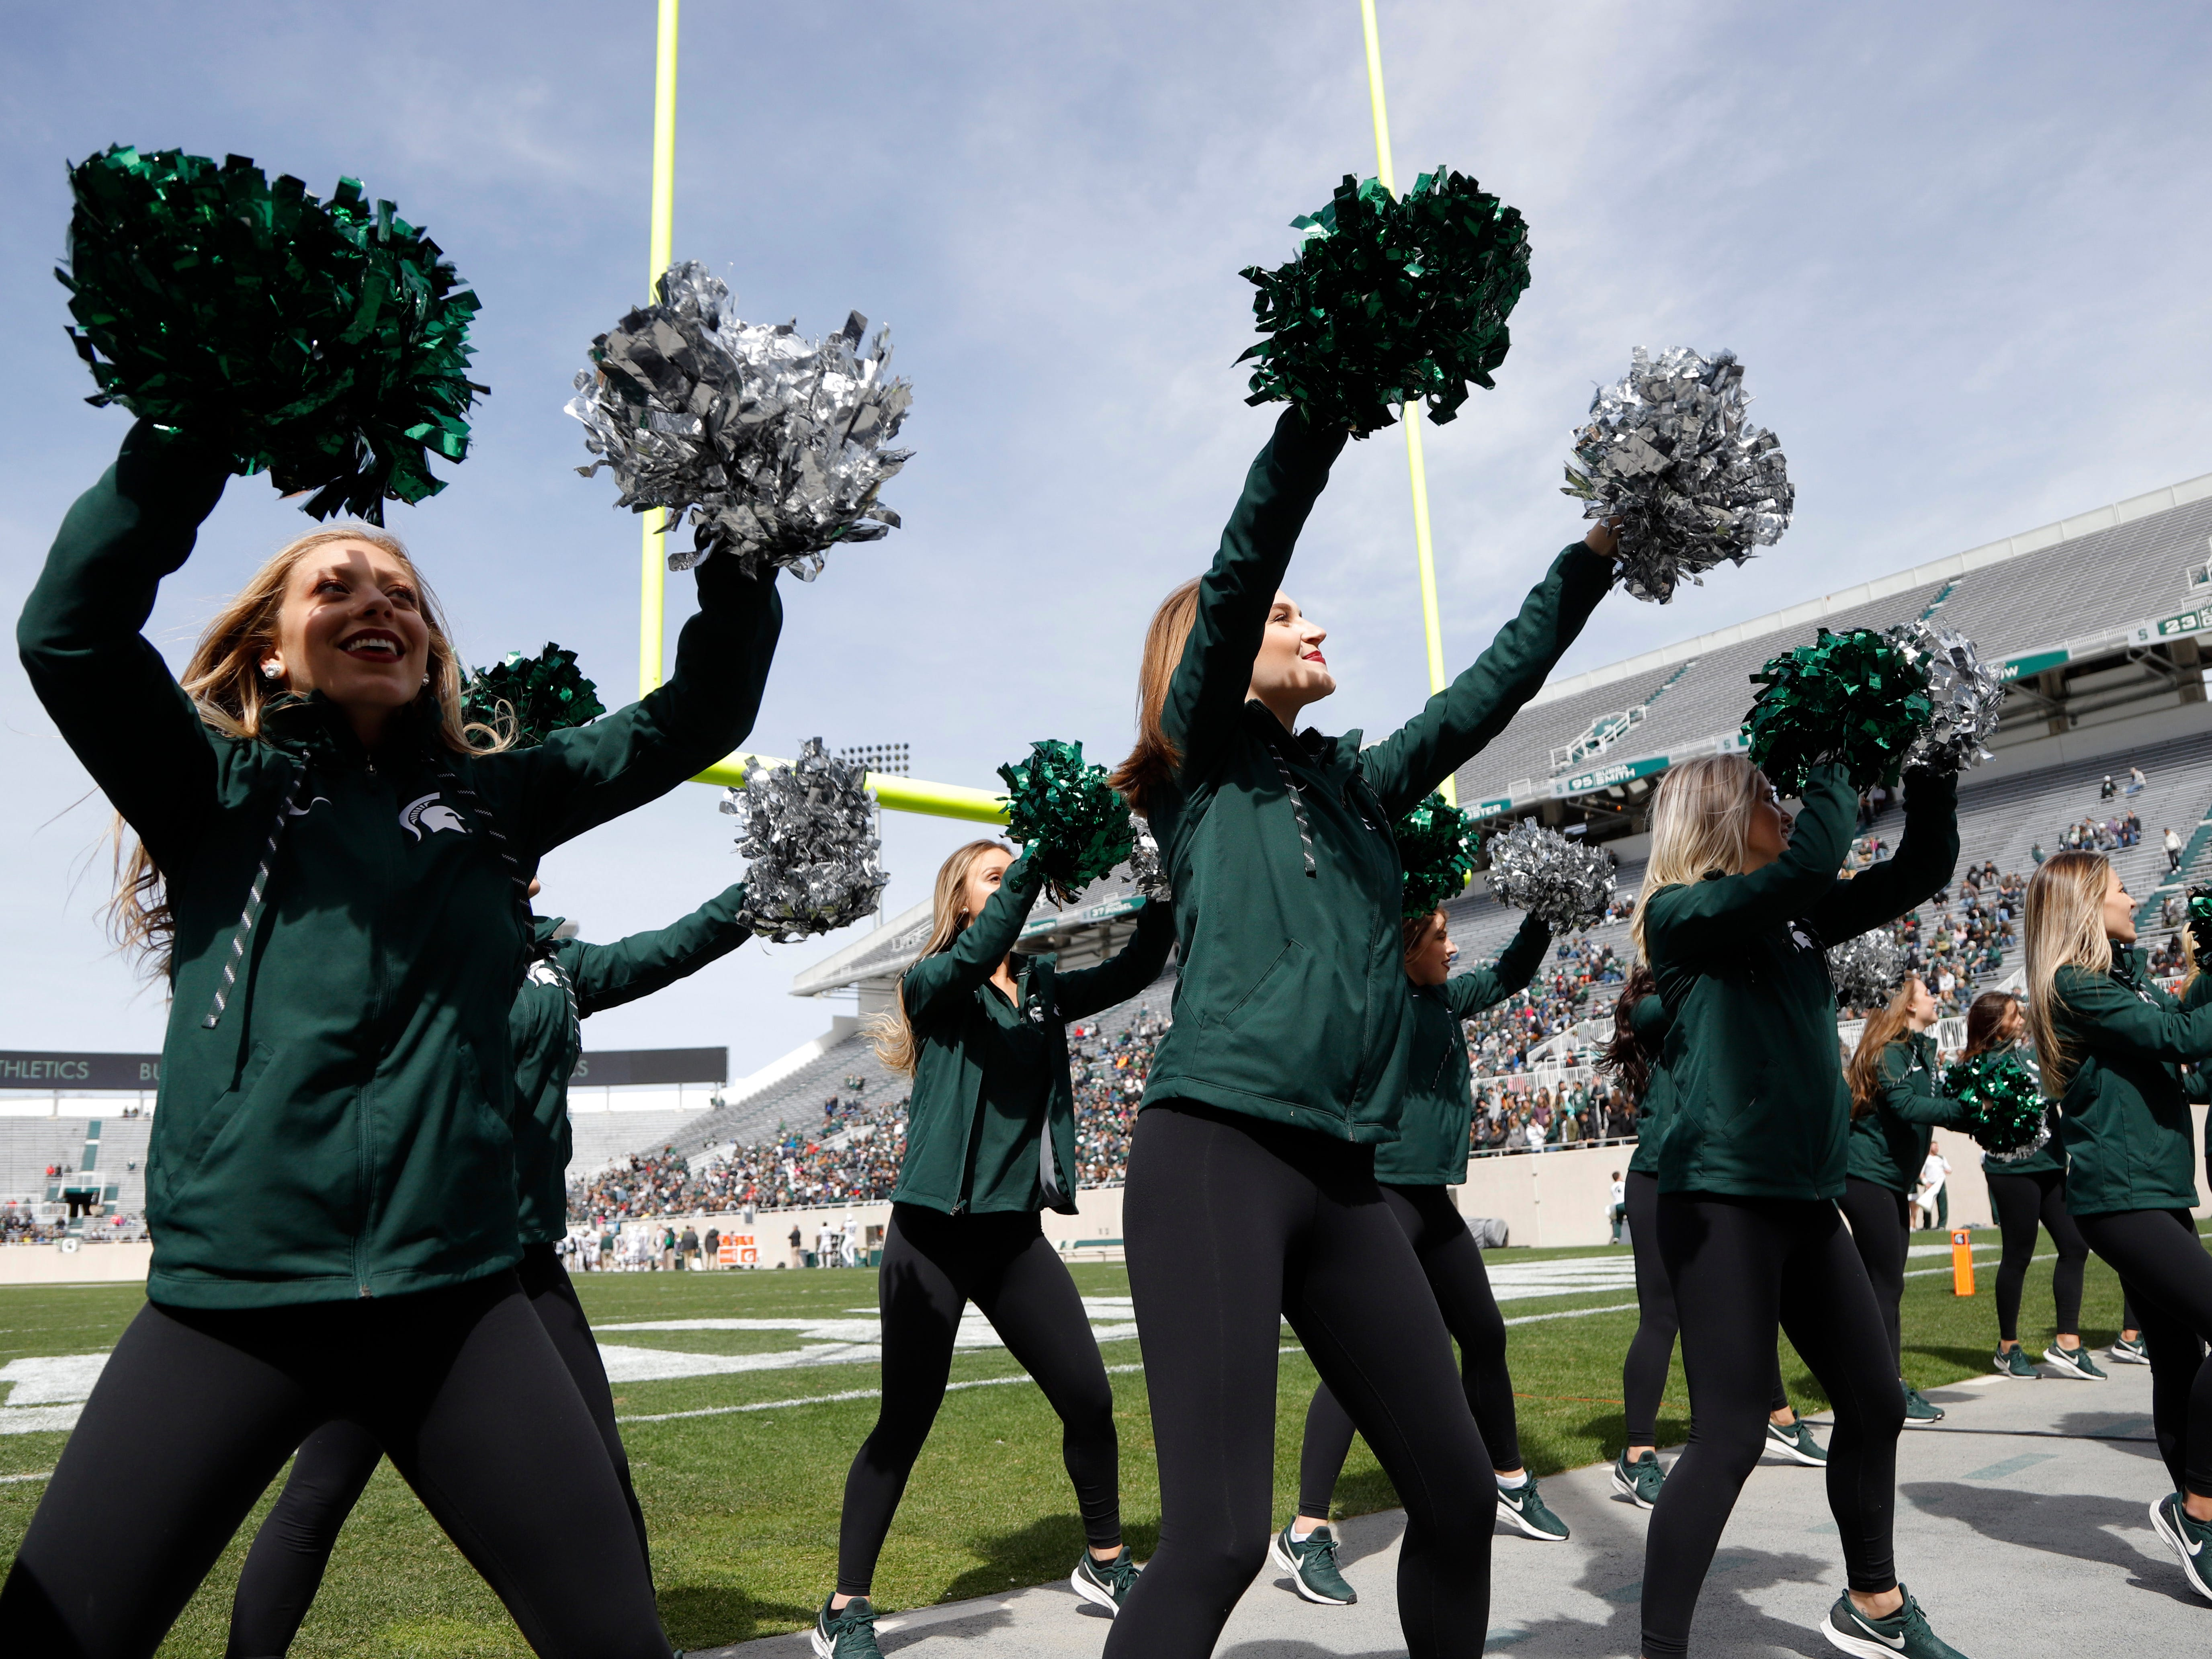 Michigan State dance team members perform during an NCAA college football spring scrimmage game, Saturday, April 13, 2019, in East Lansing, Mich. (AP Photo/Al Goldis)